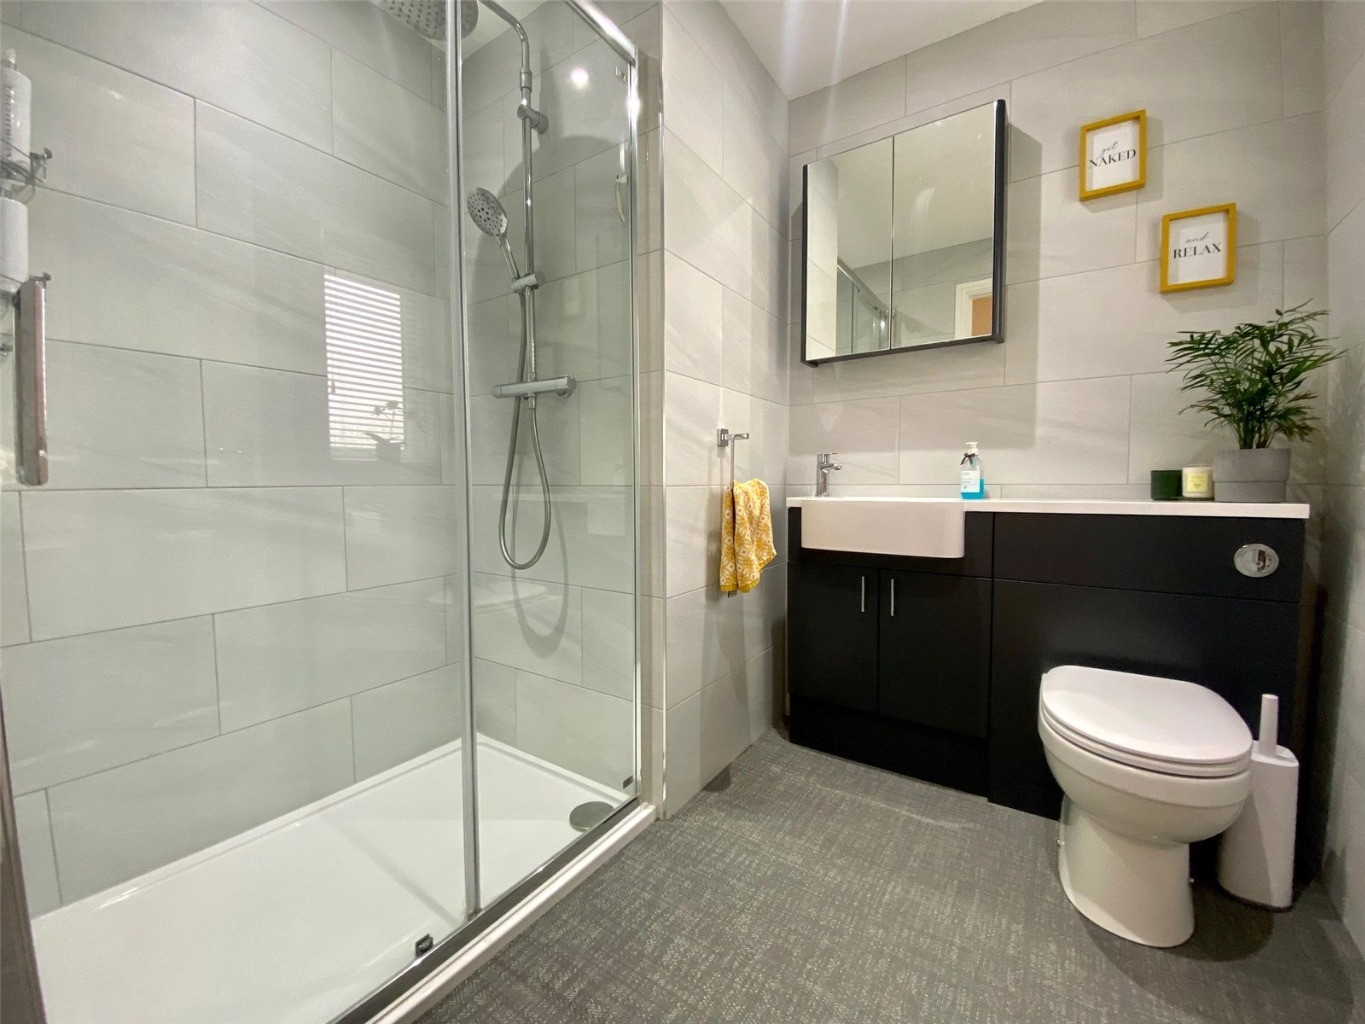 4 bed detached house for sale in Lannesbury Crescent, St. Neots  - Property Image 14